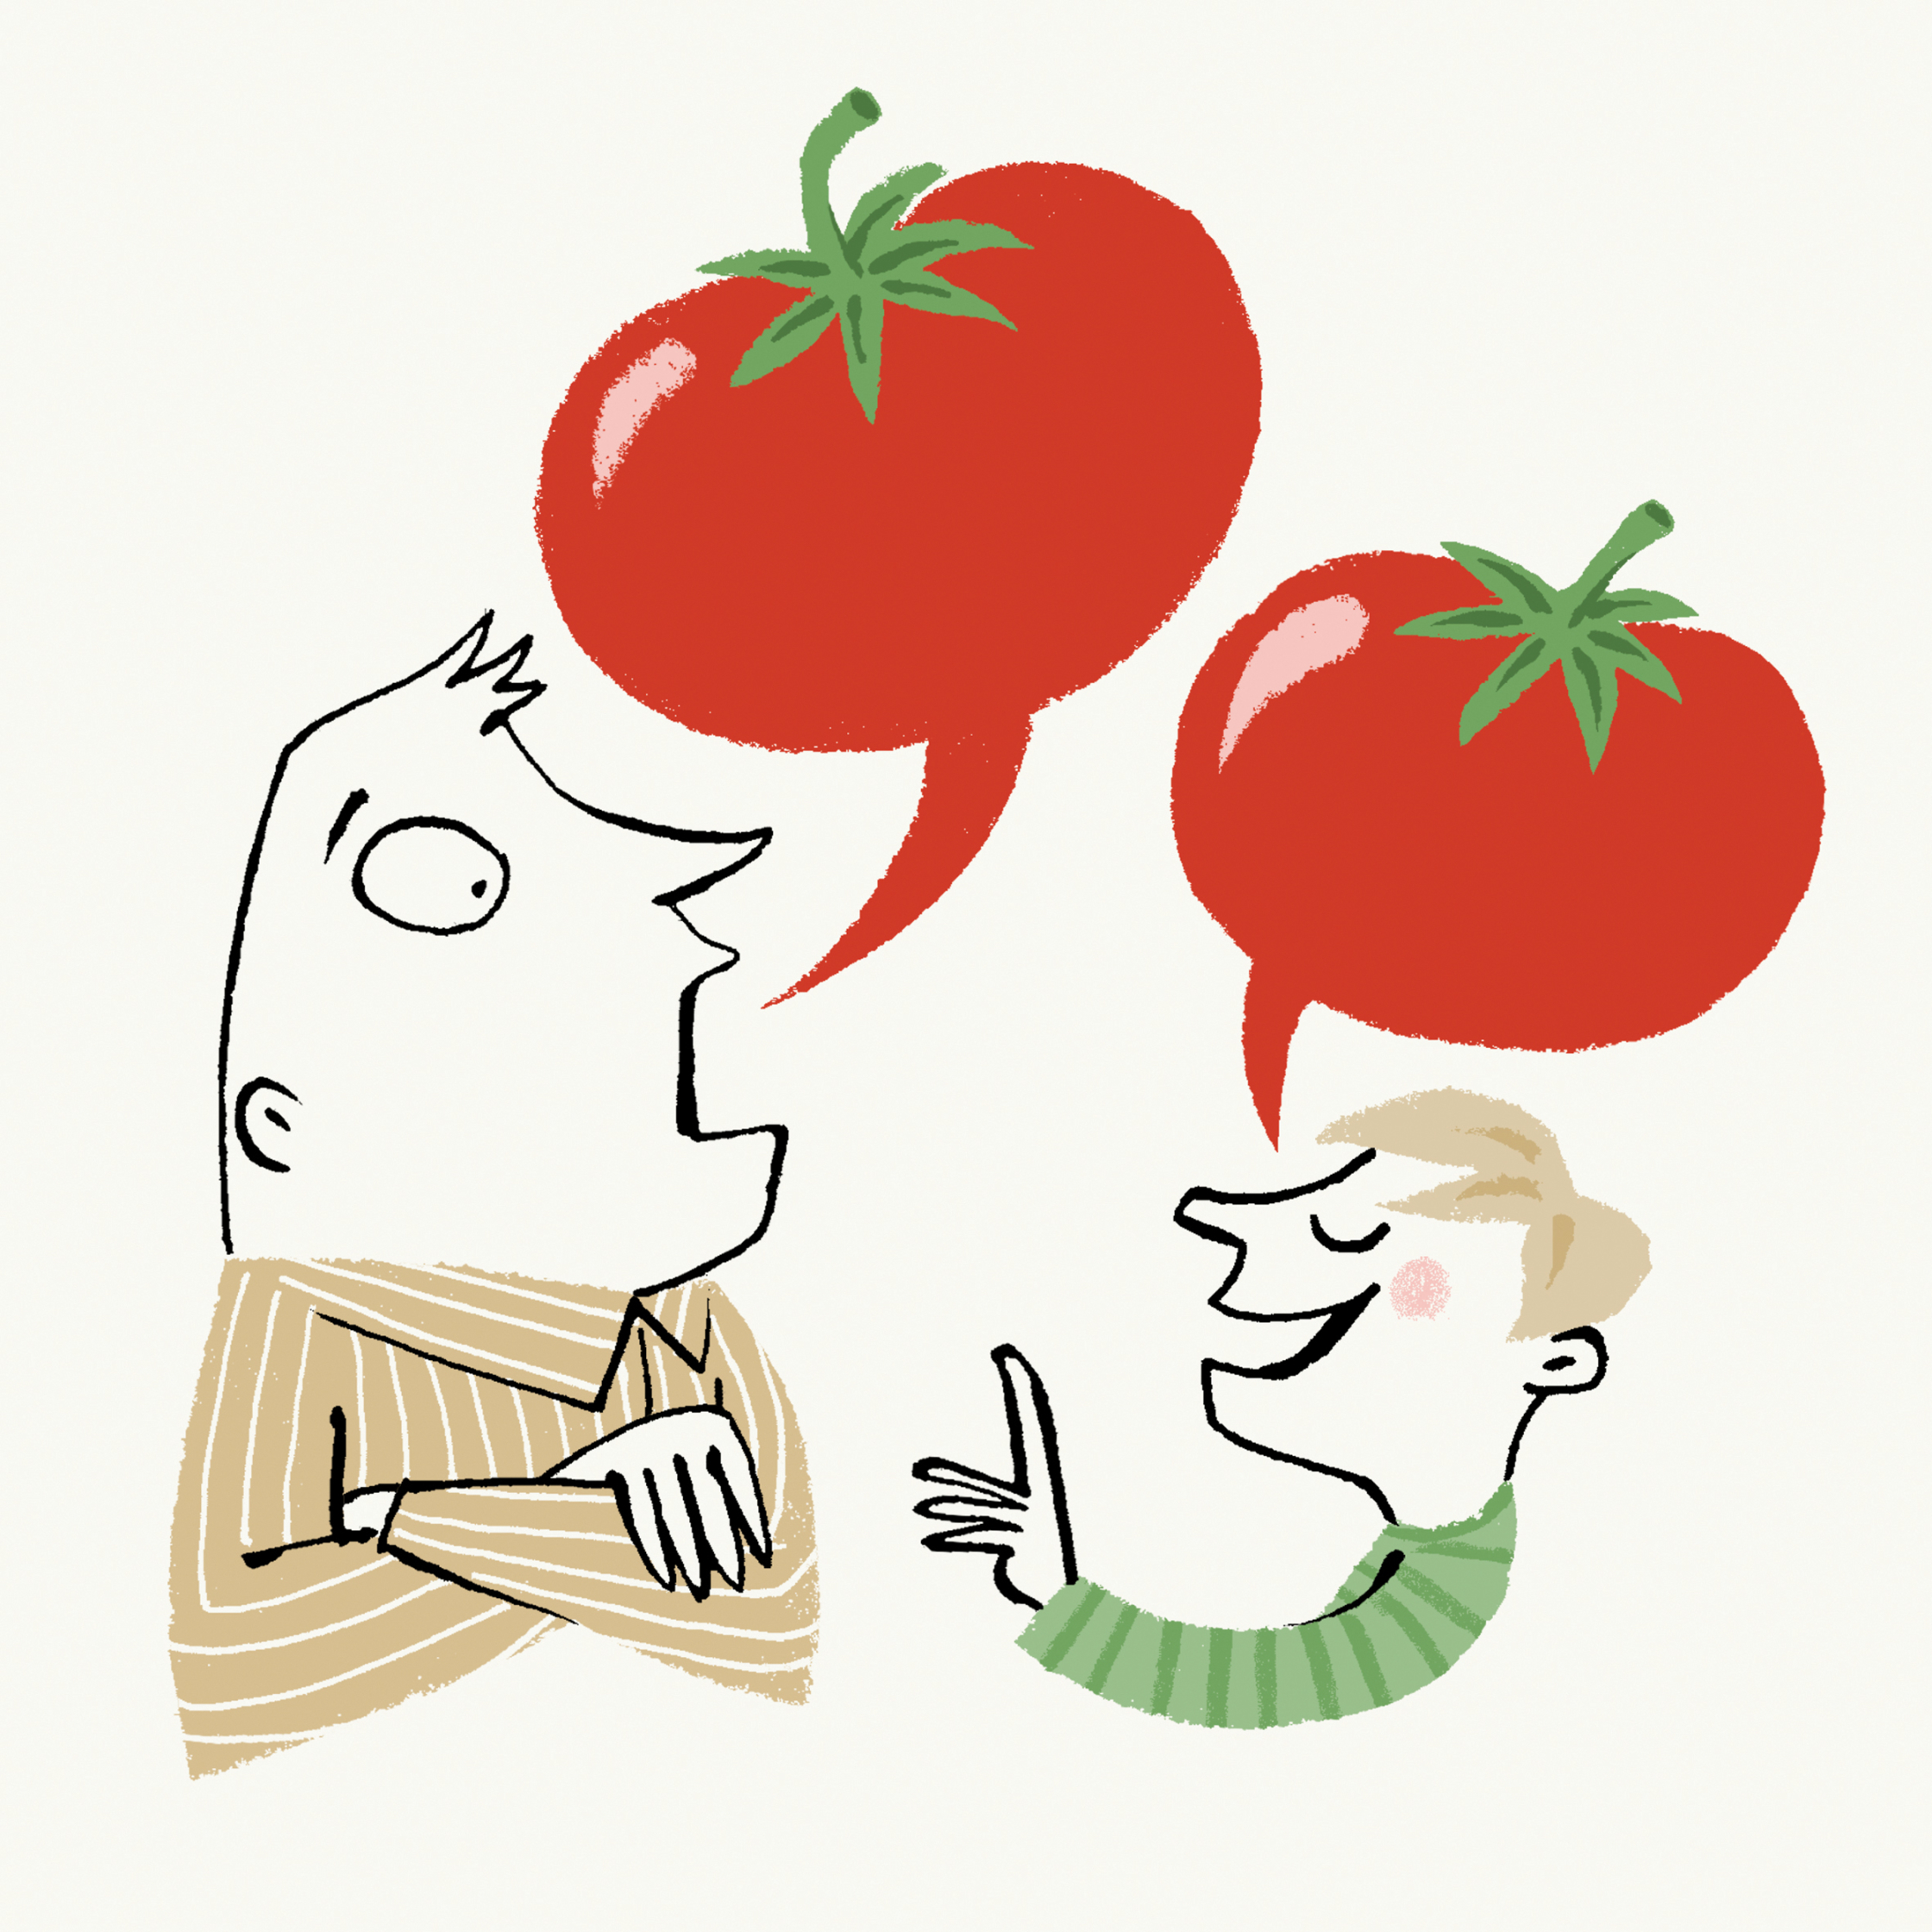 Streich-1843-Economist-British-American-English-say-tomato.jpg